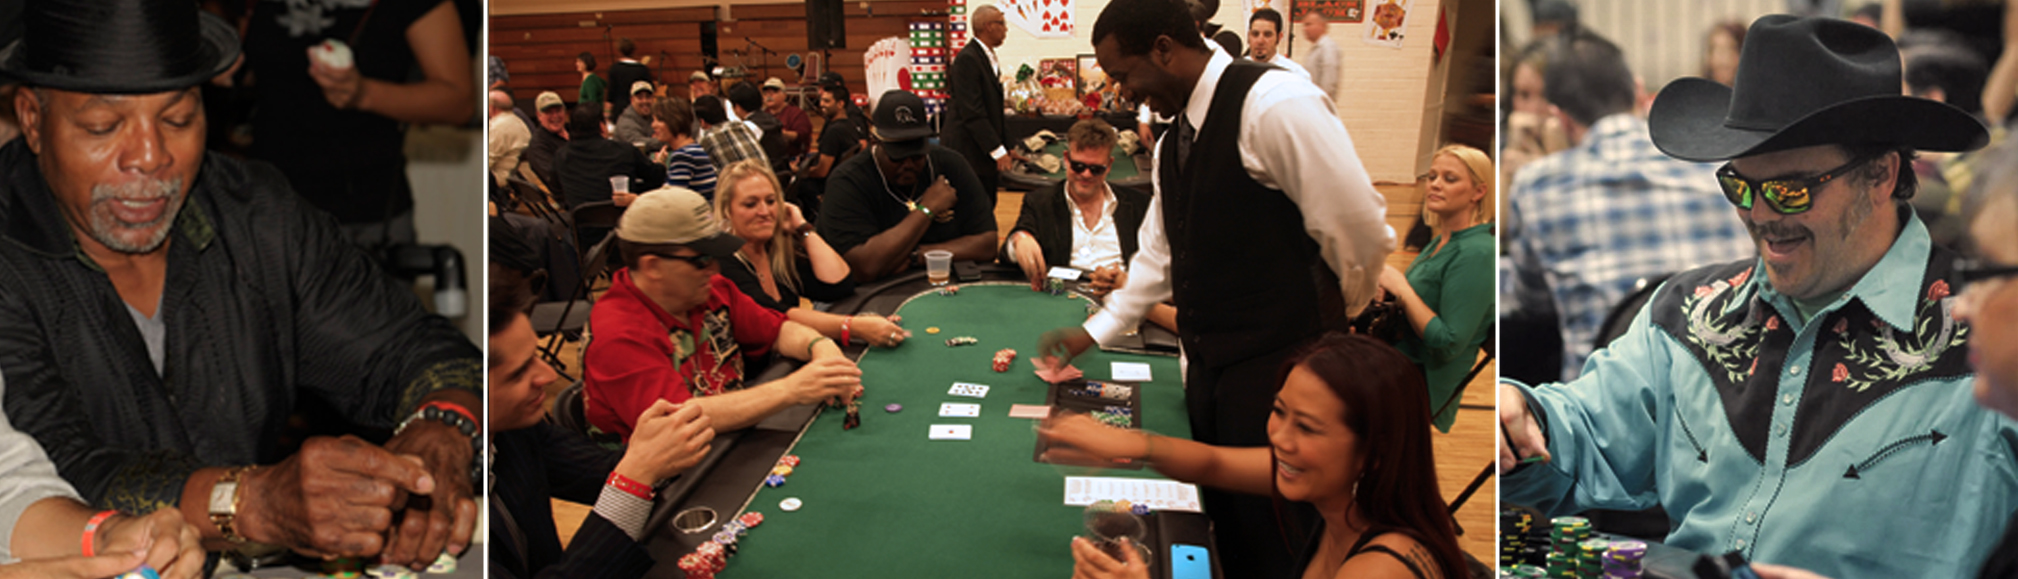 Beat the Odds - Celebrity Poker Tournament